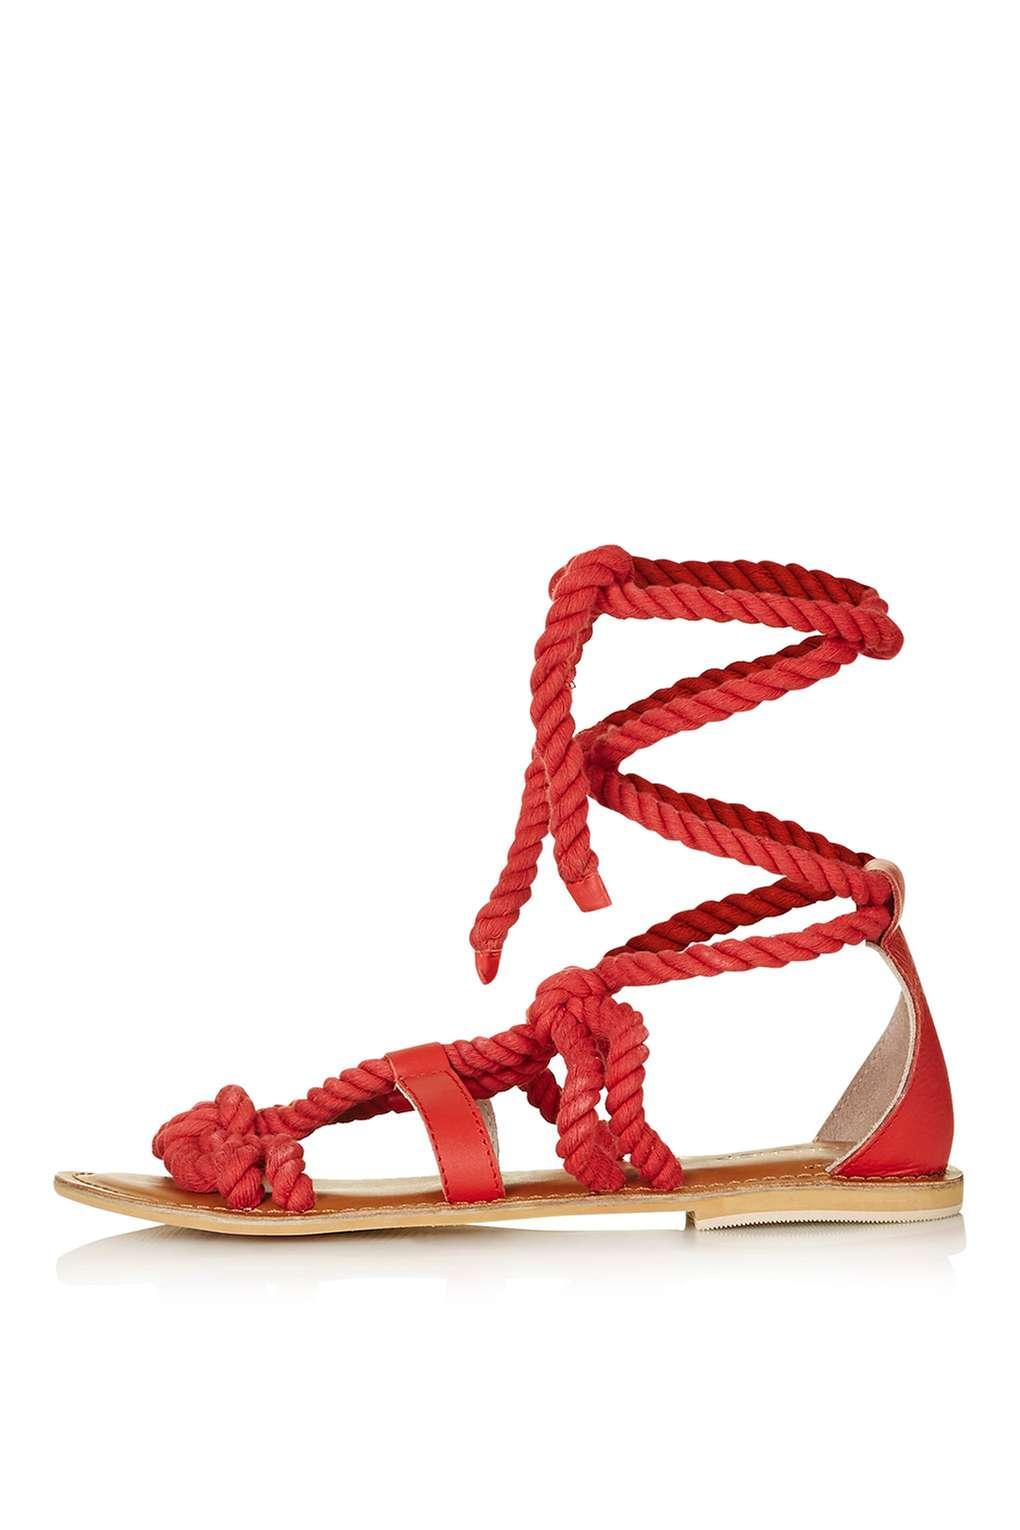 12 Cute Summer Sandals for 2016